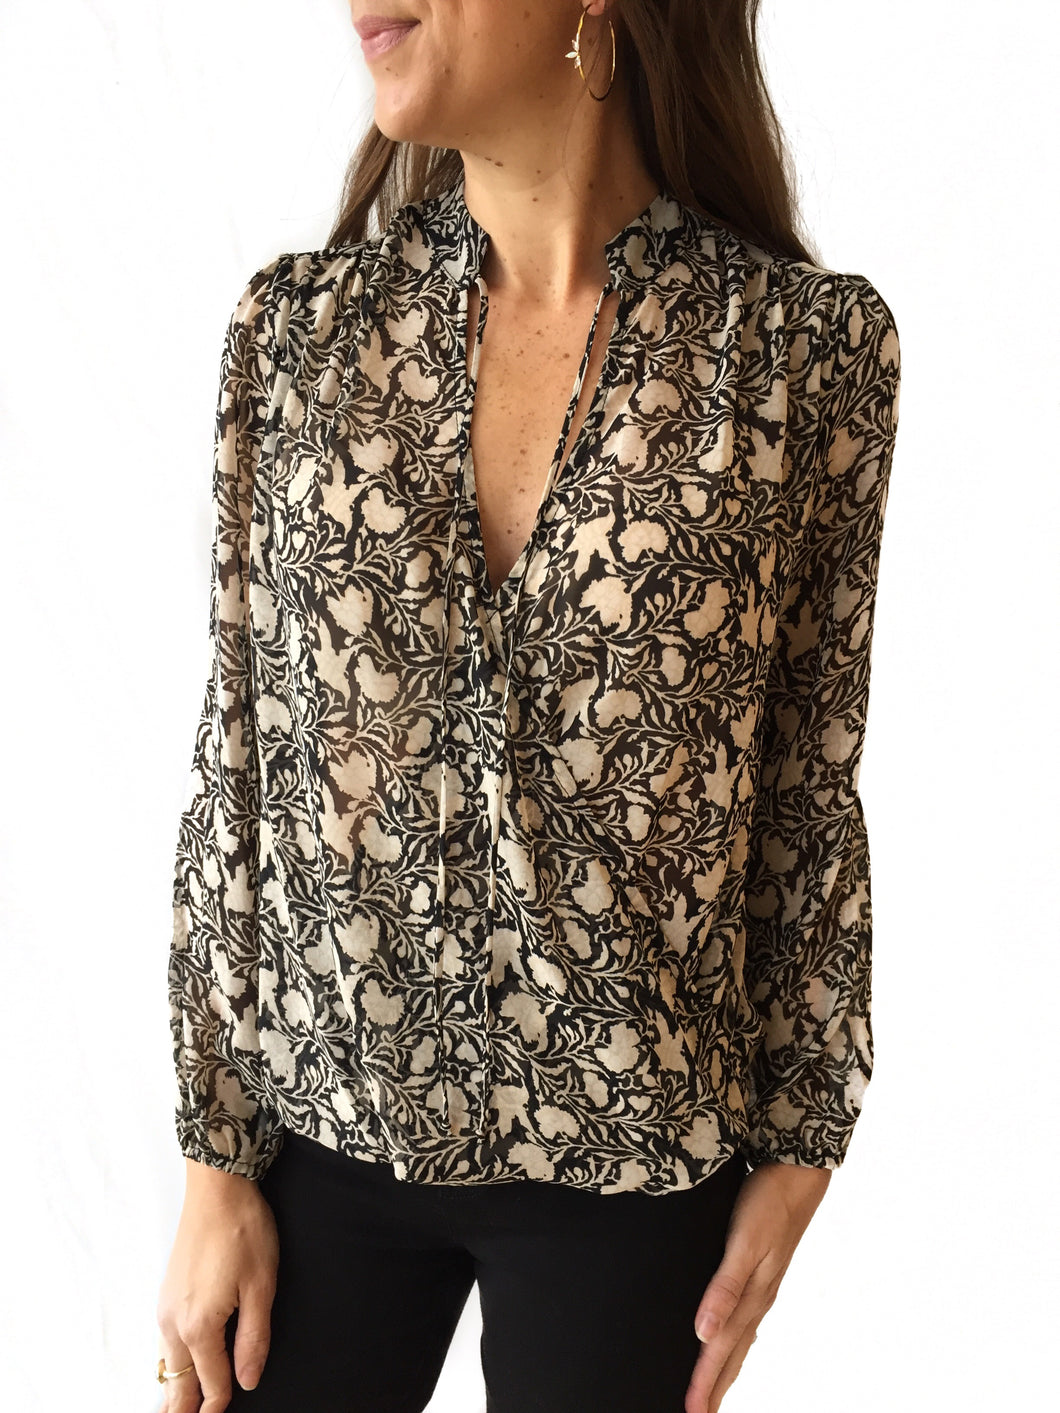 Cream/Black Floral Tie Neck Top